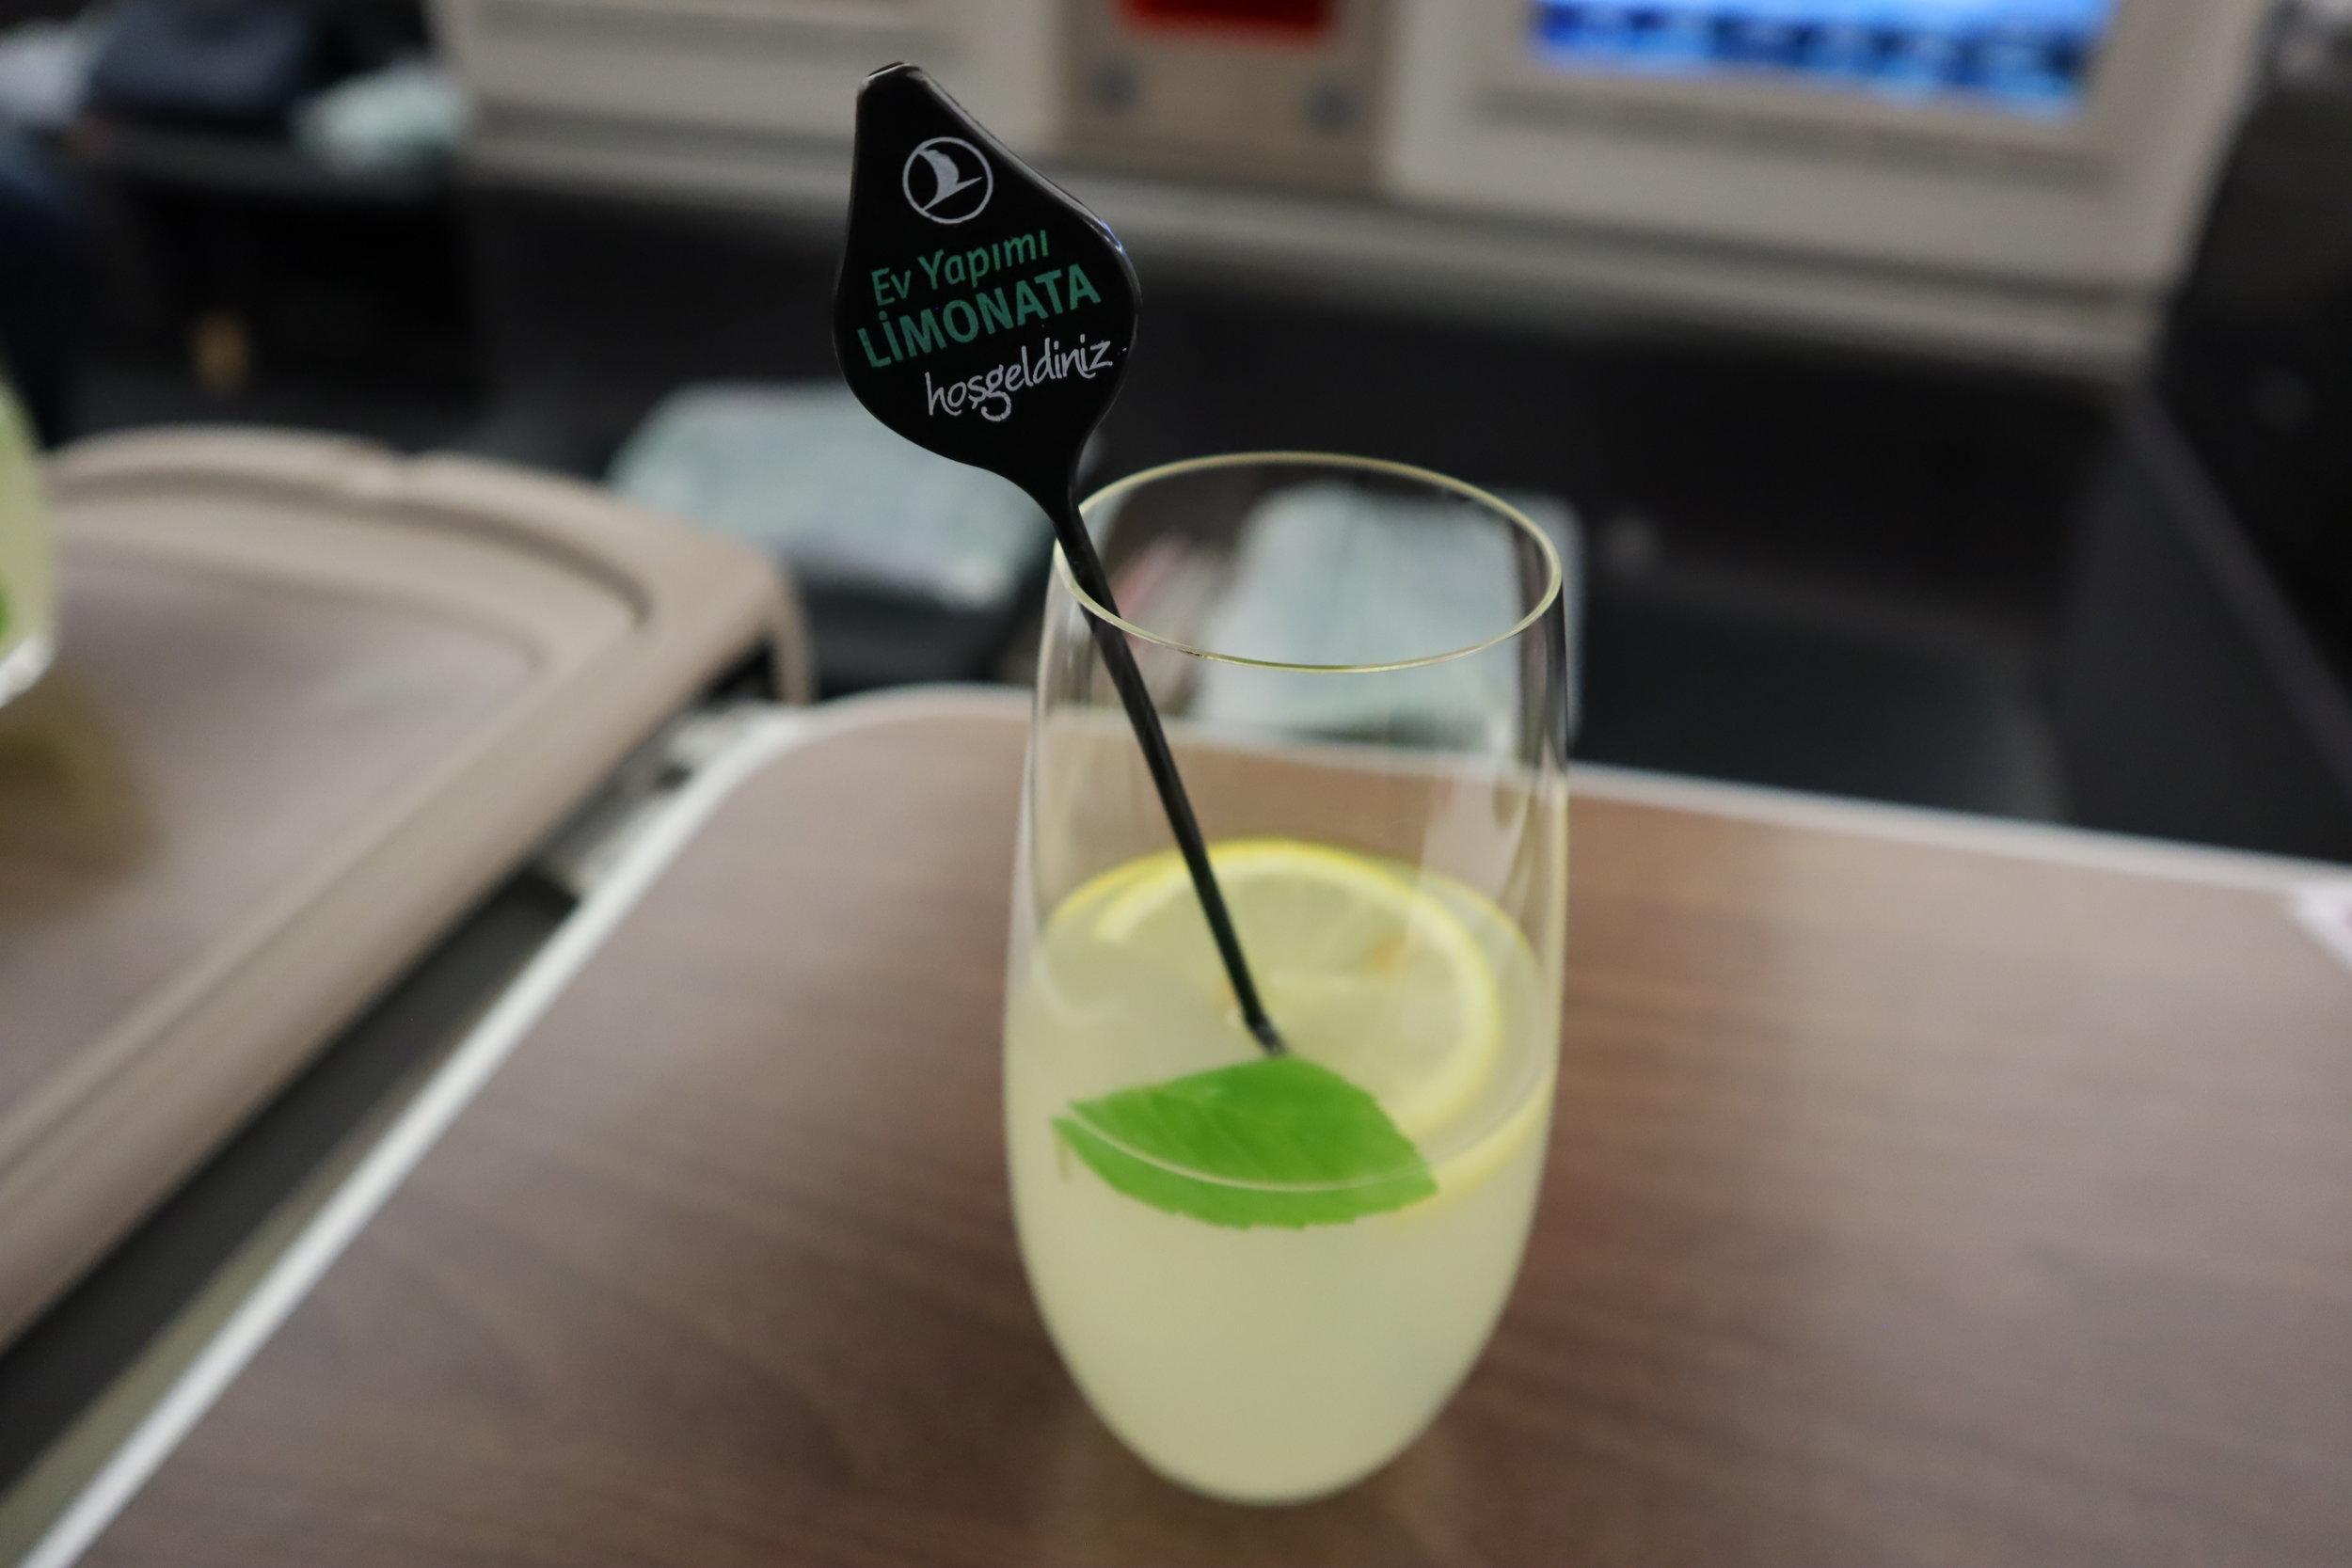 Turkish Airlines A330 business class – Welcome drink